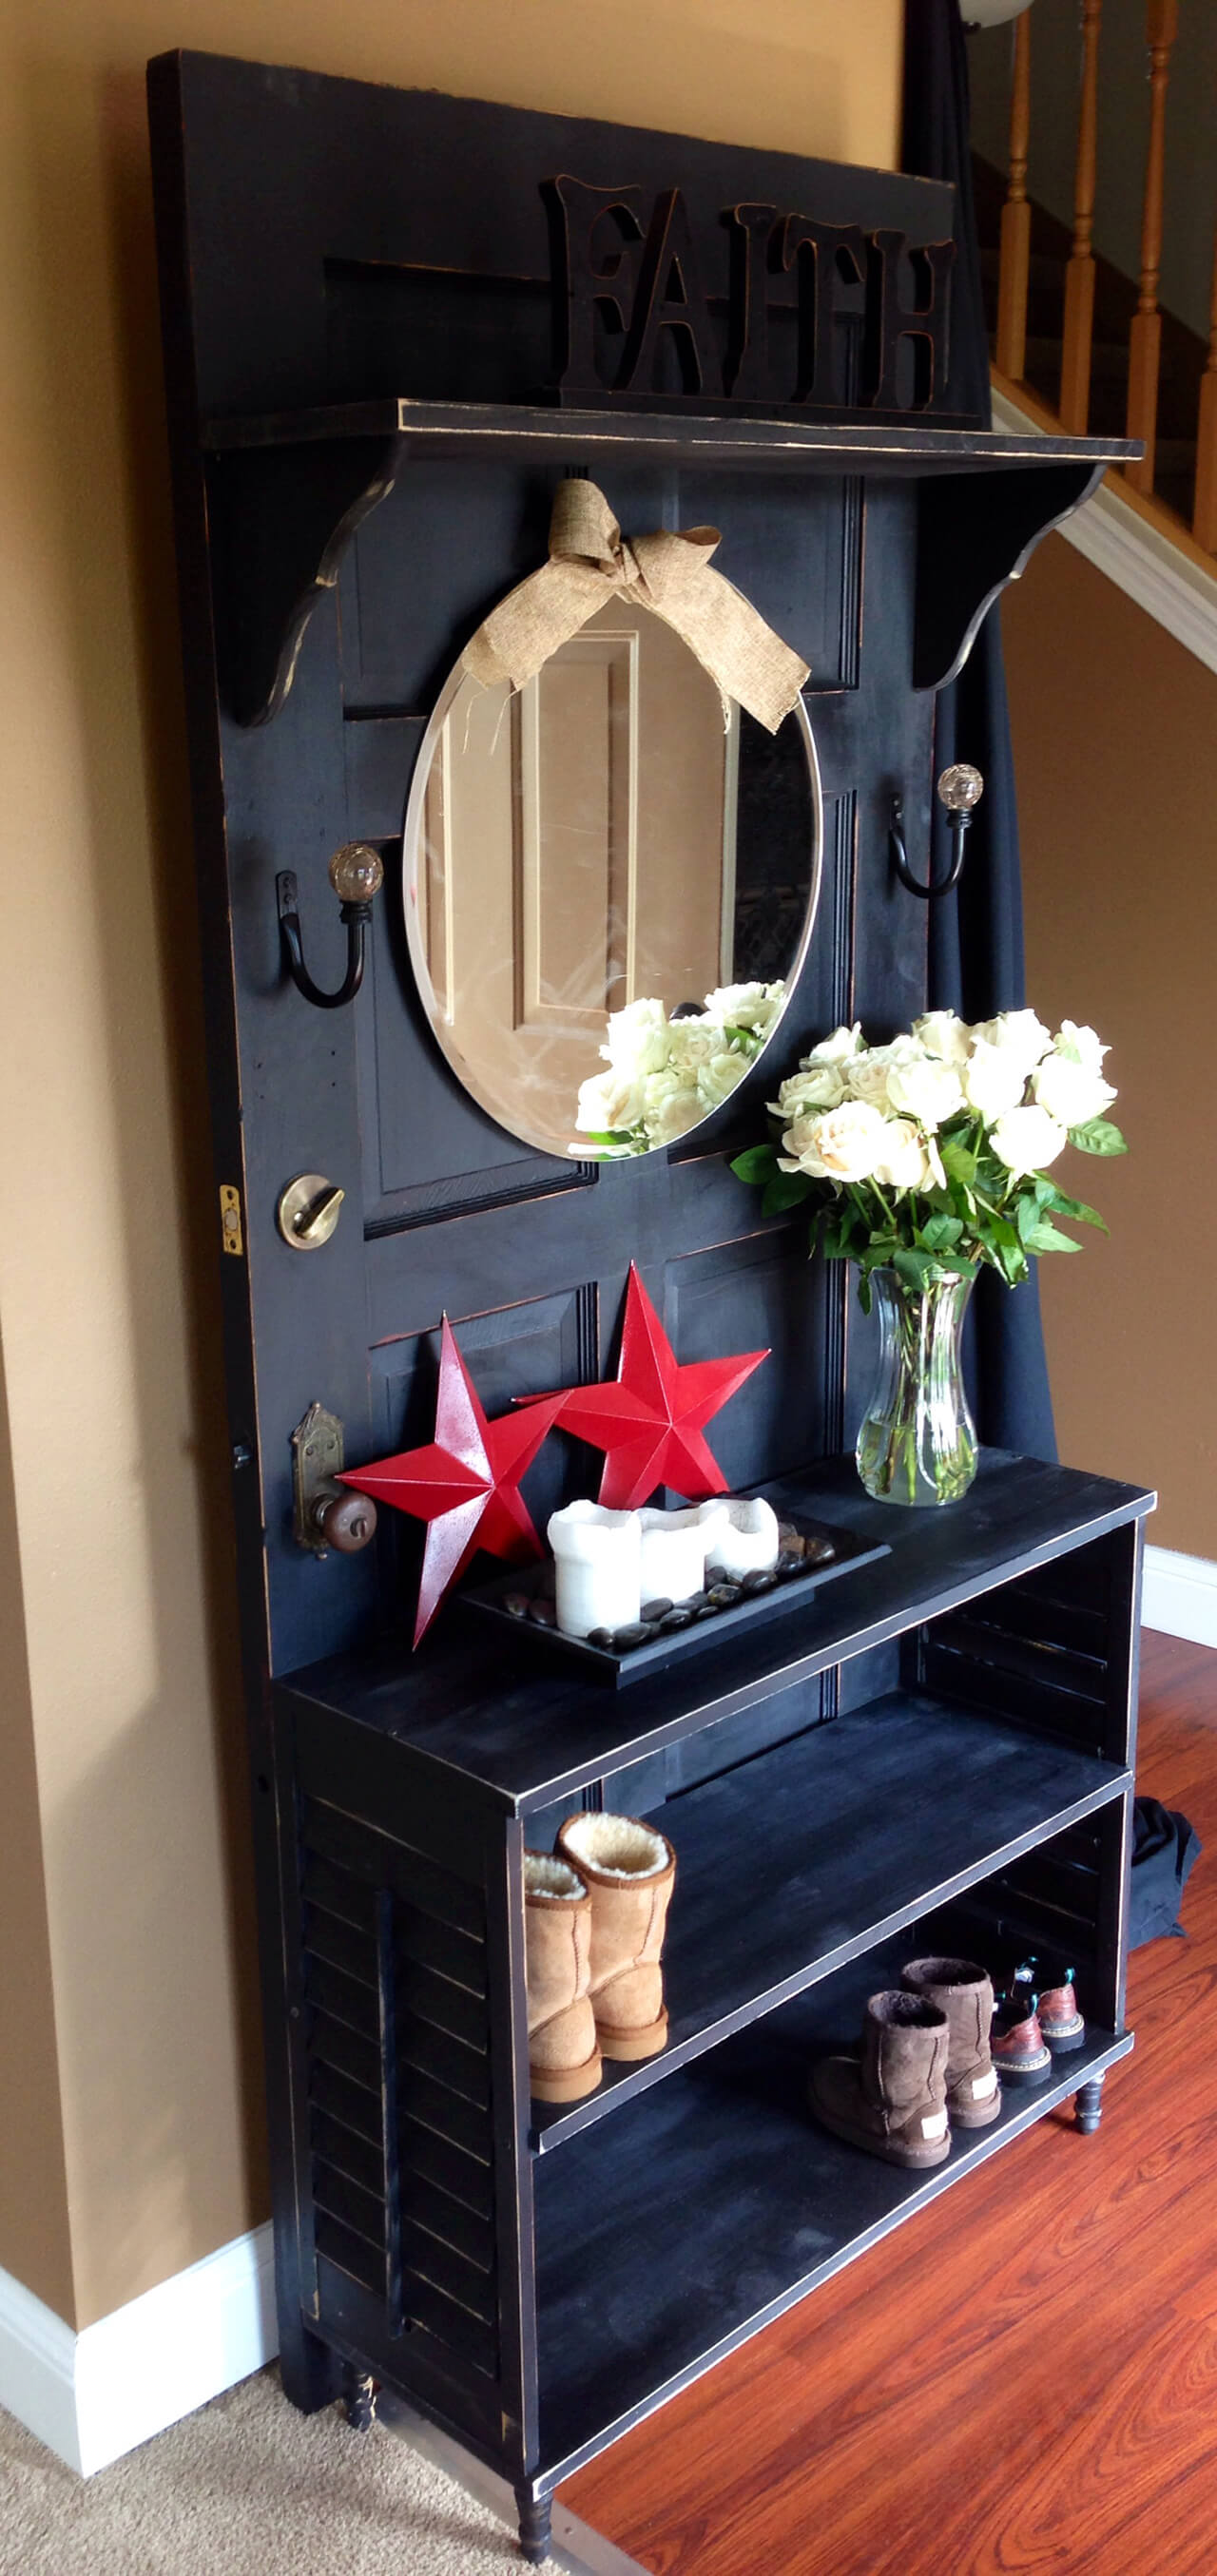 Vintage Garderobe New Takes On Old Doors: 21 Ideas How To Repurpose Old